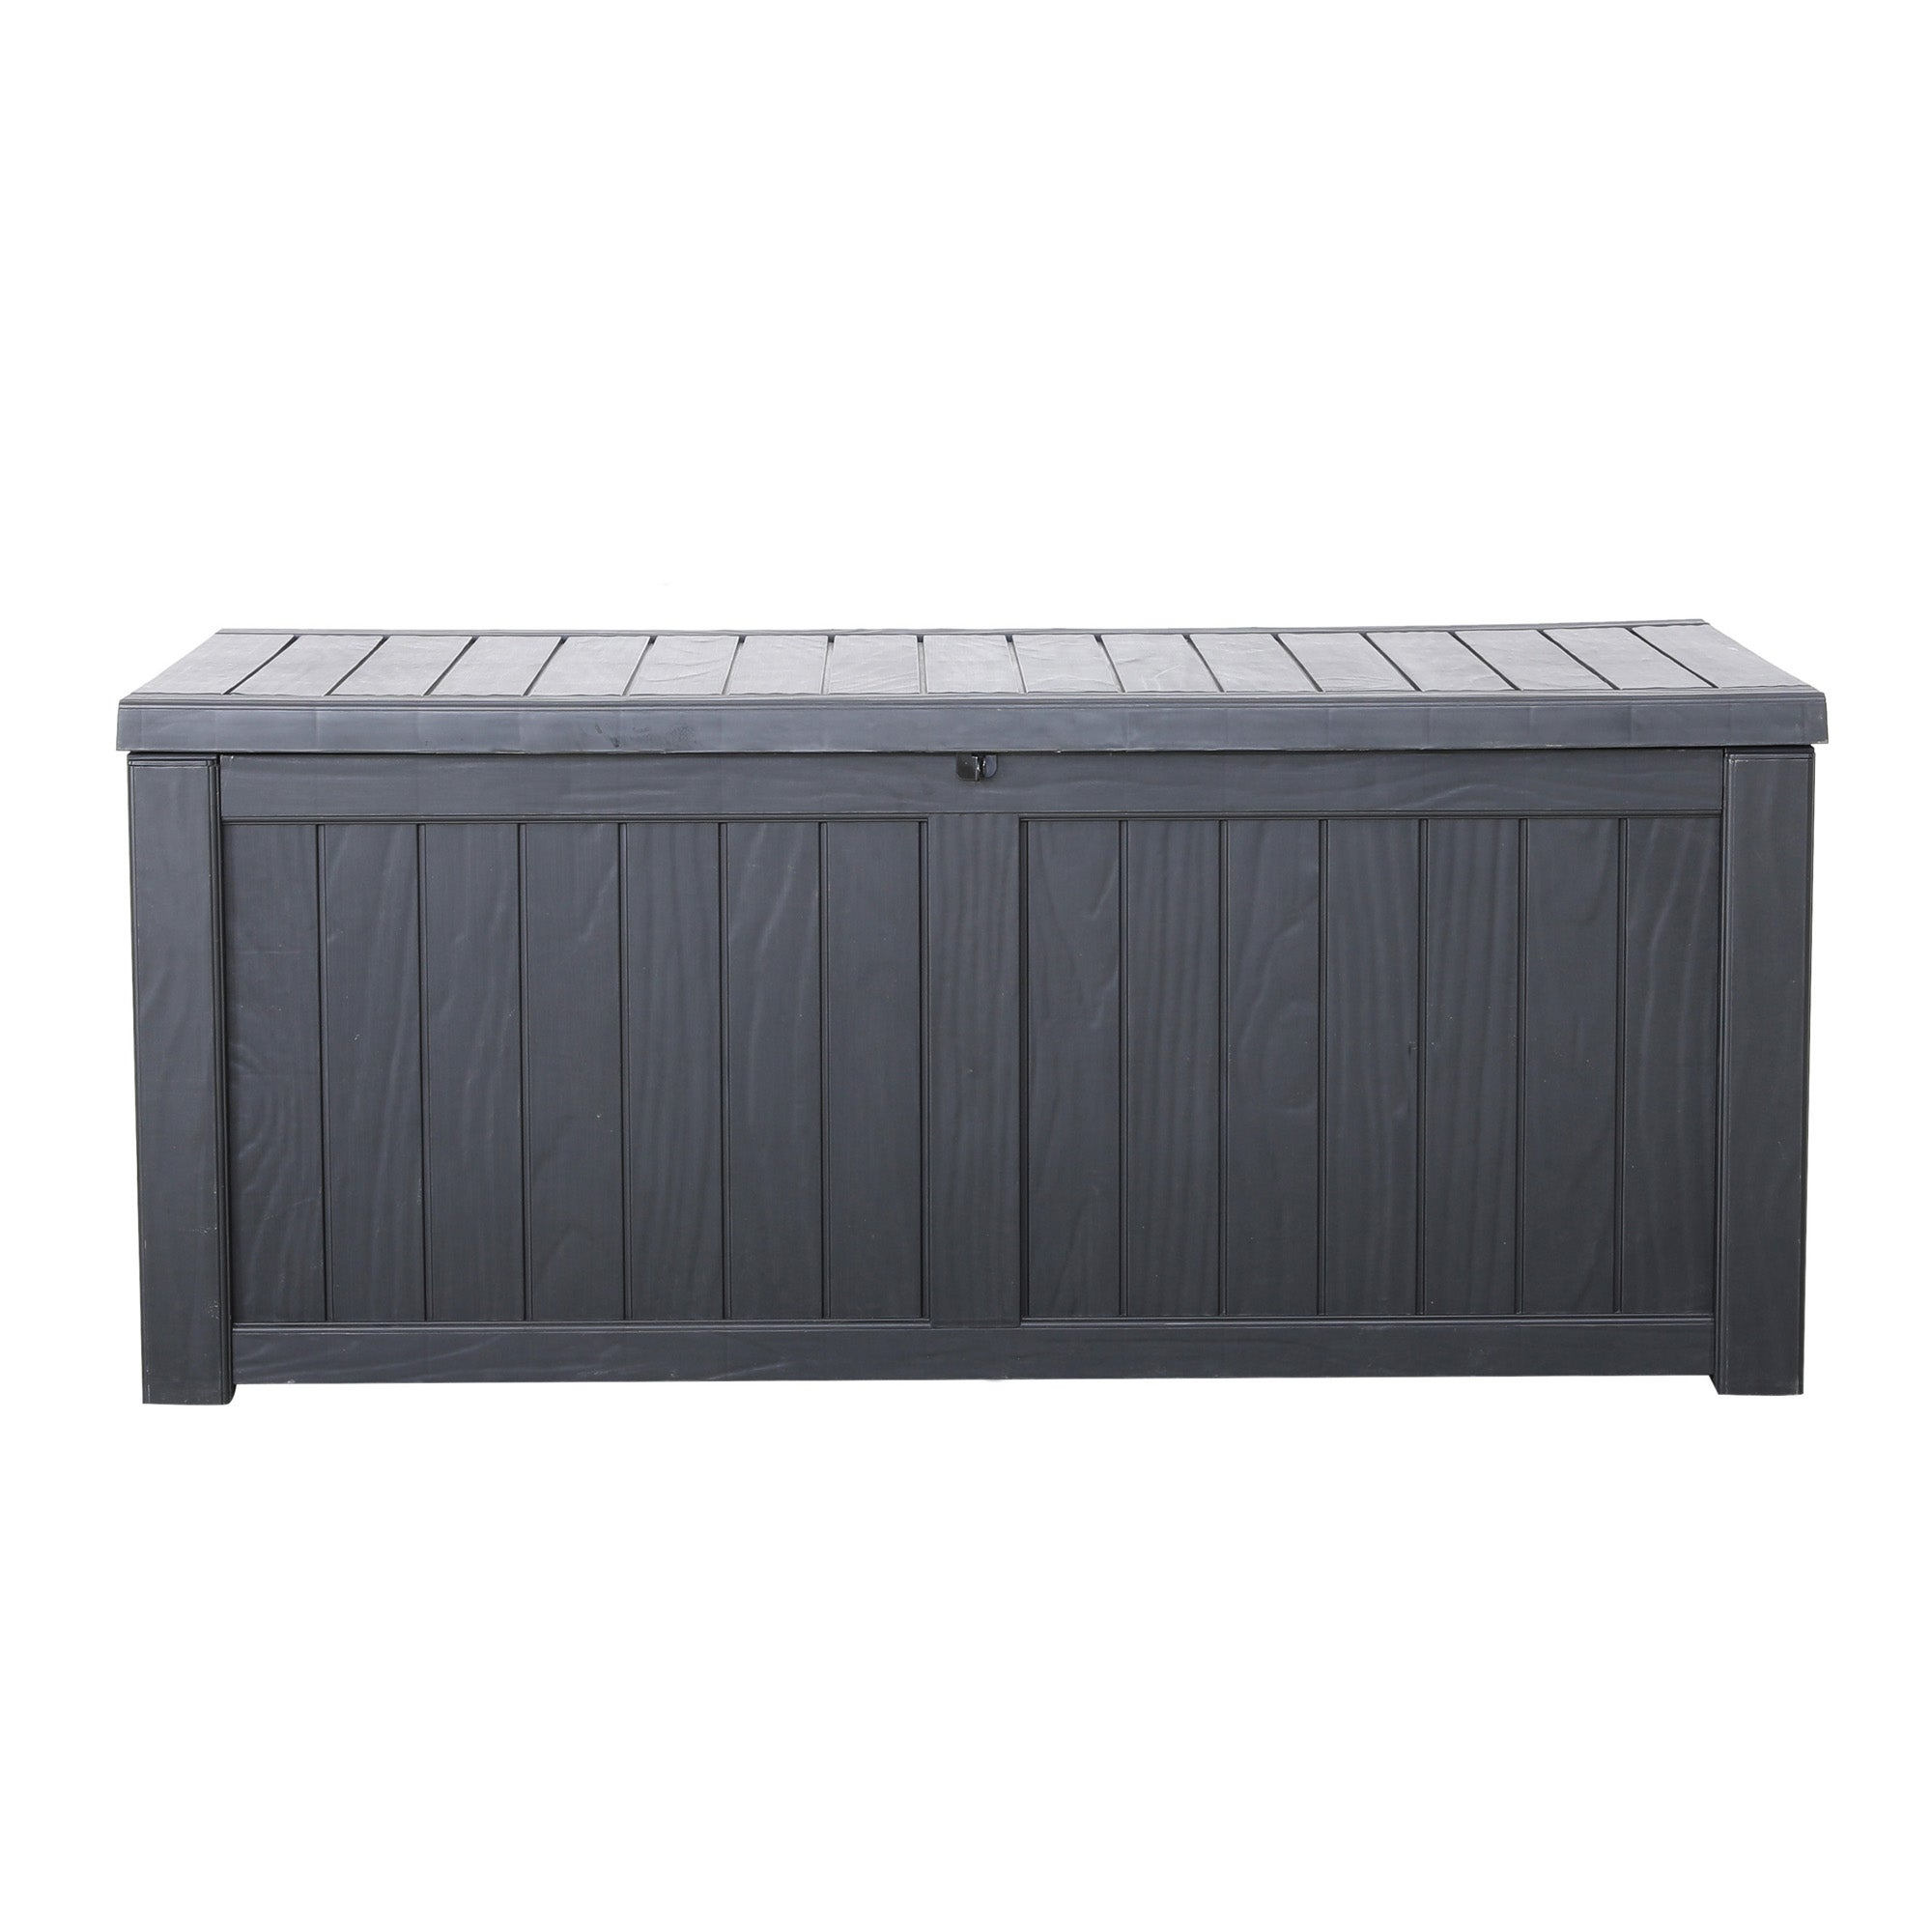 Black Deluxe Waterproof Outdoor Storage Box with Double Gas Lift Black